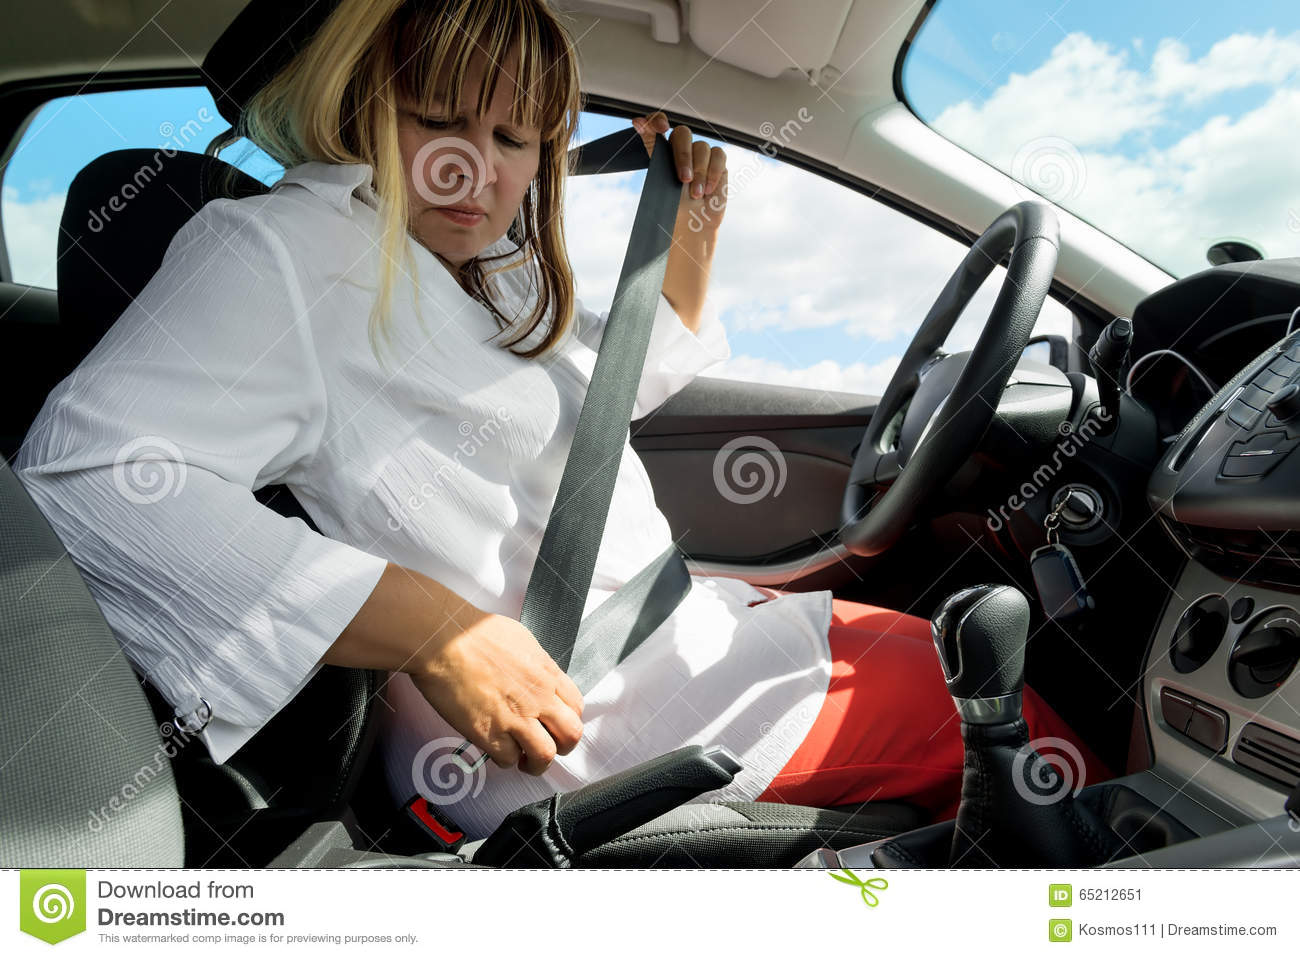 Woman with a seat belt in the car